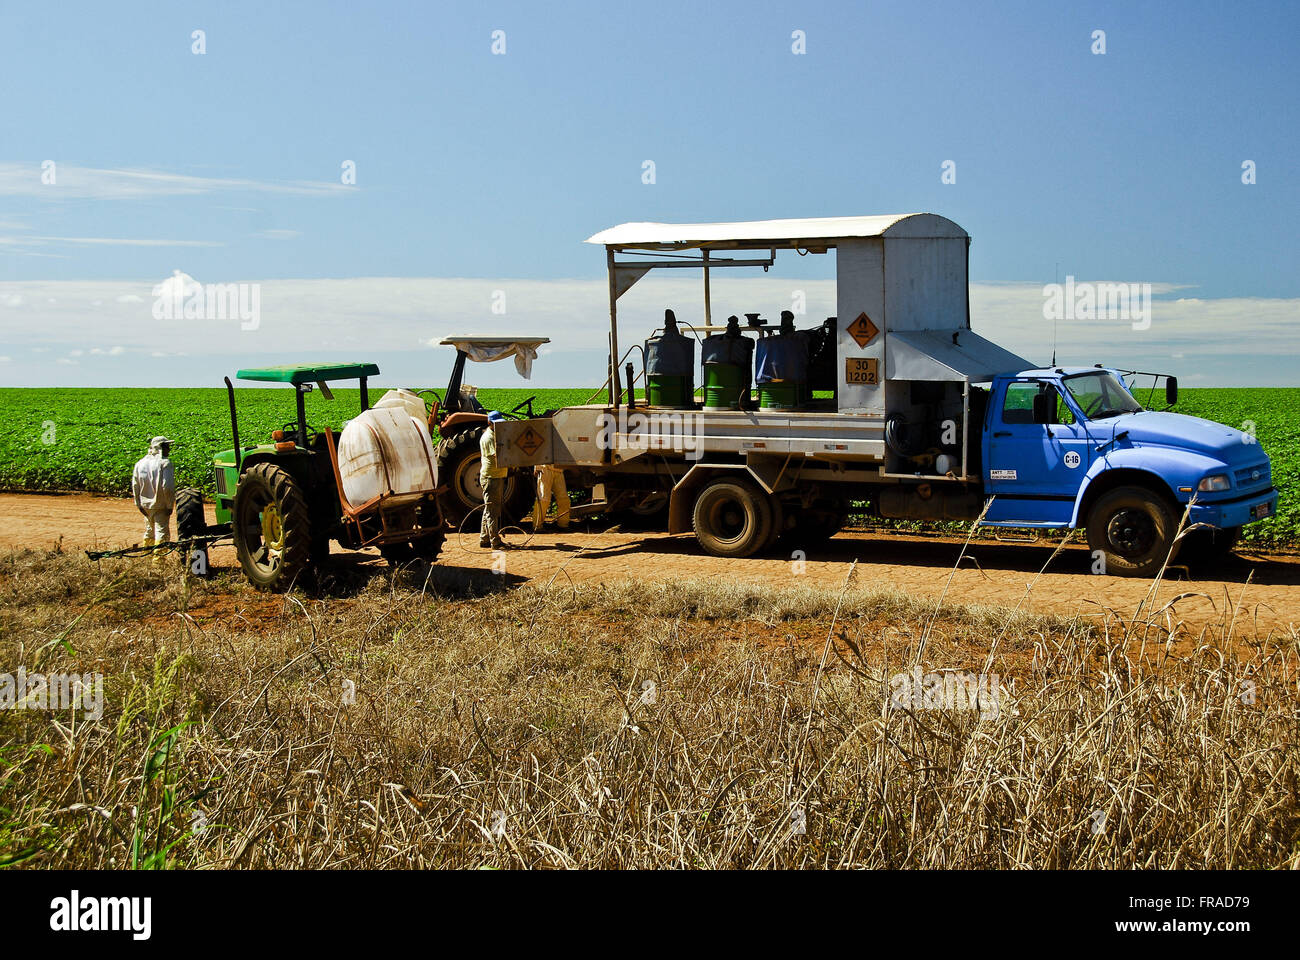 Agricultural machinery for soybean harvest in the countryside - Stock Image